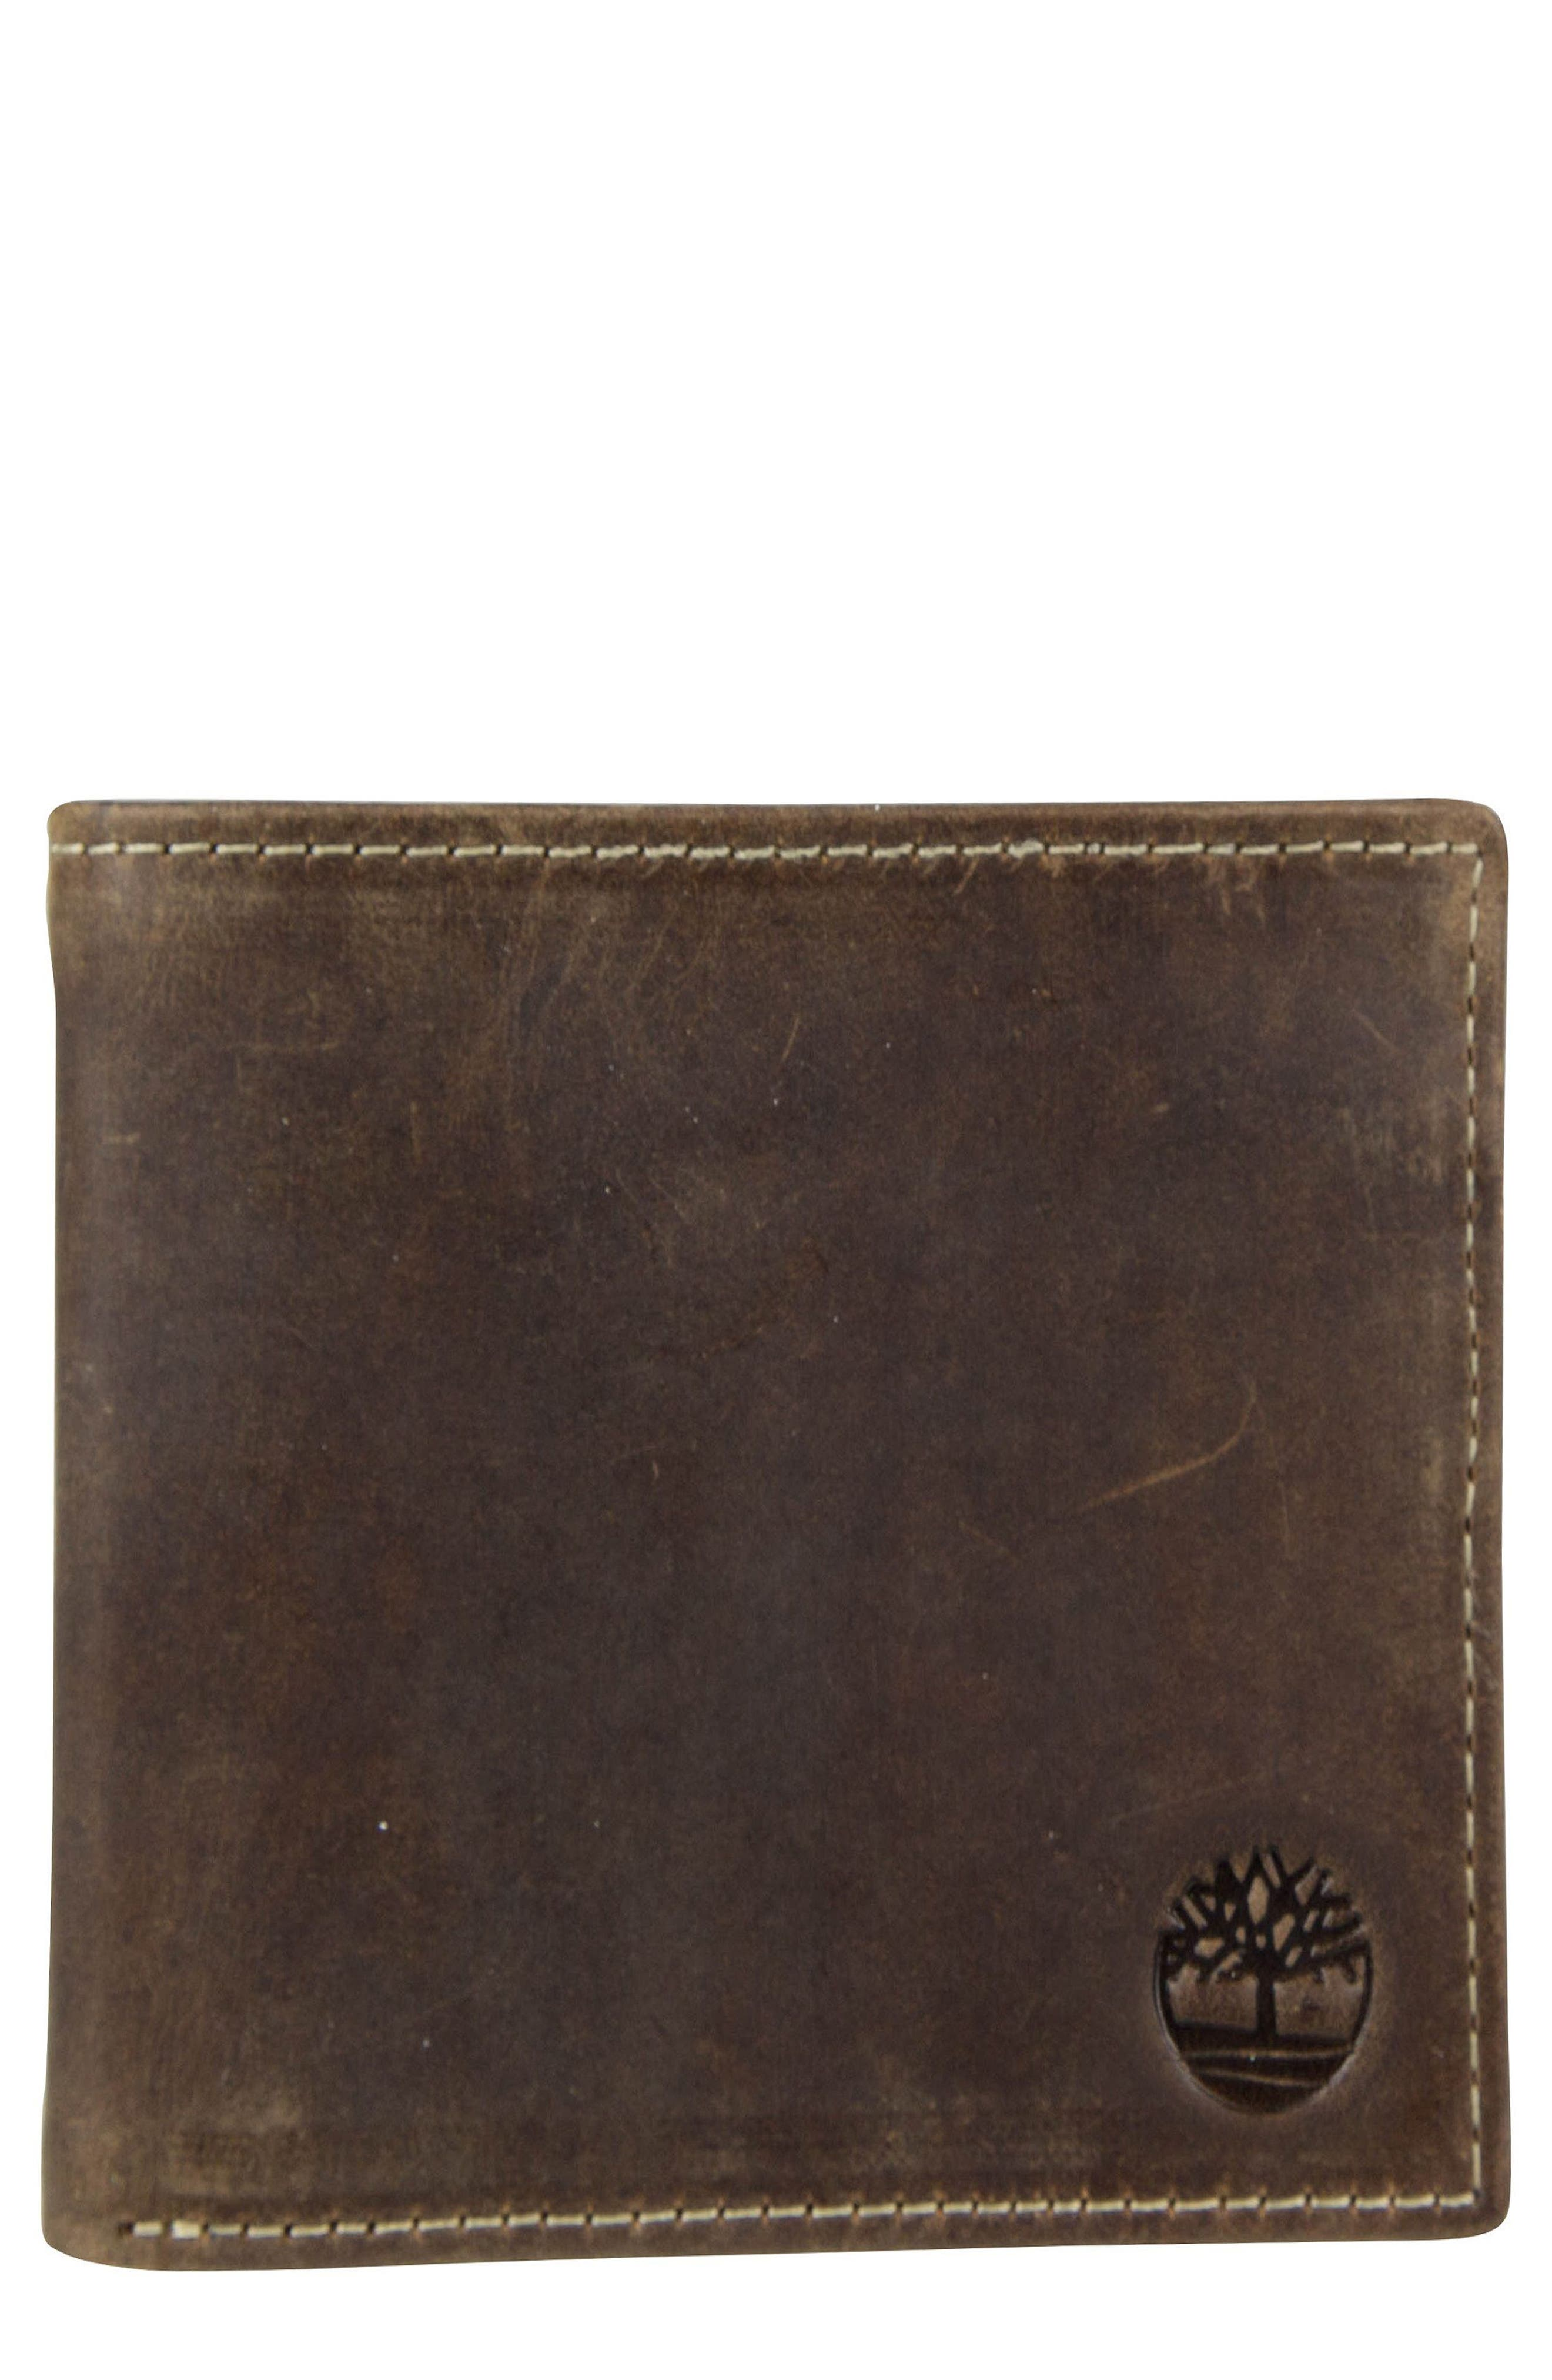 Distressed Leather Wallet,                         Main,                         color, Brown